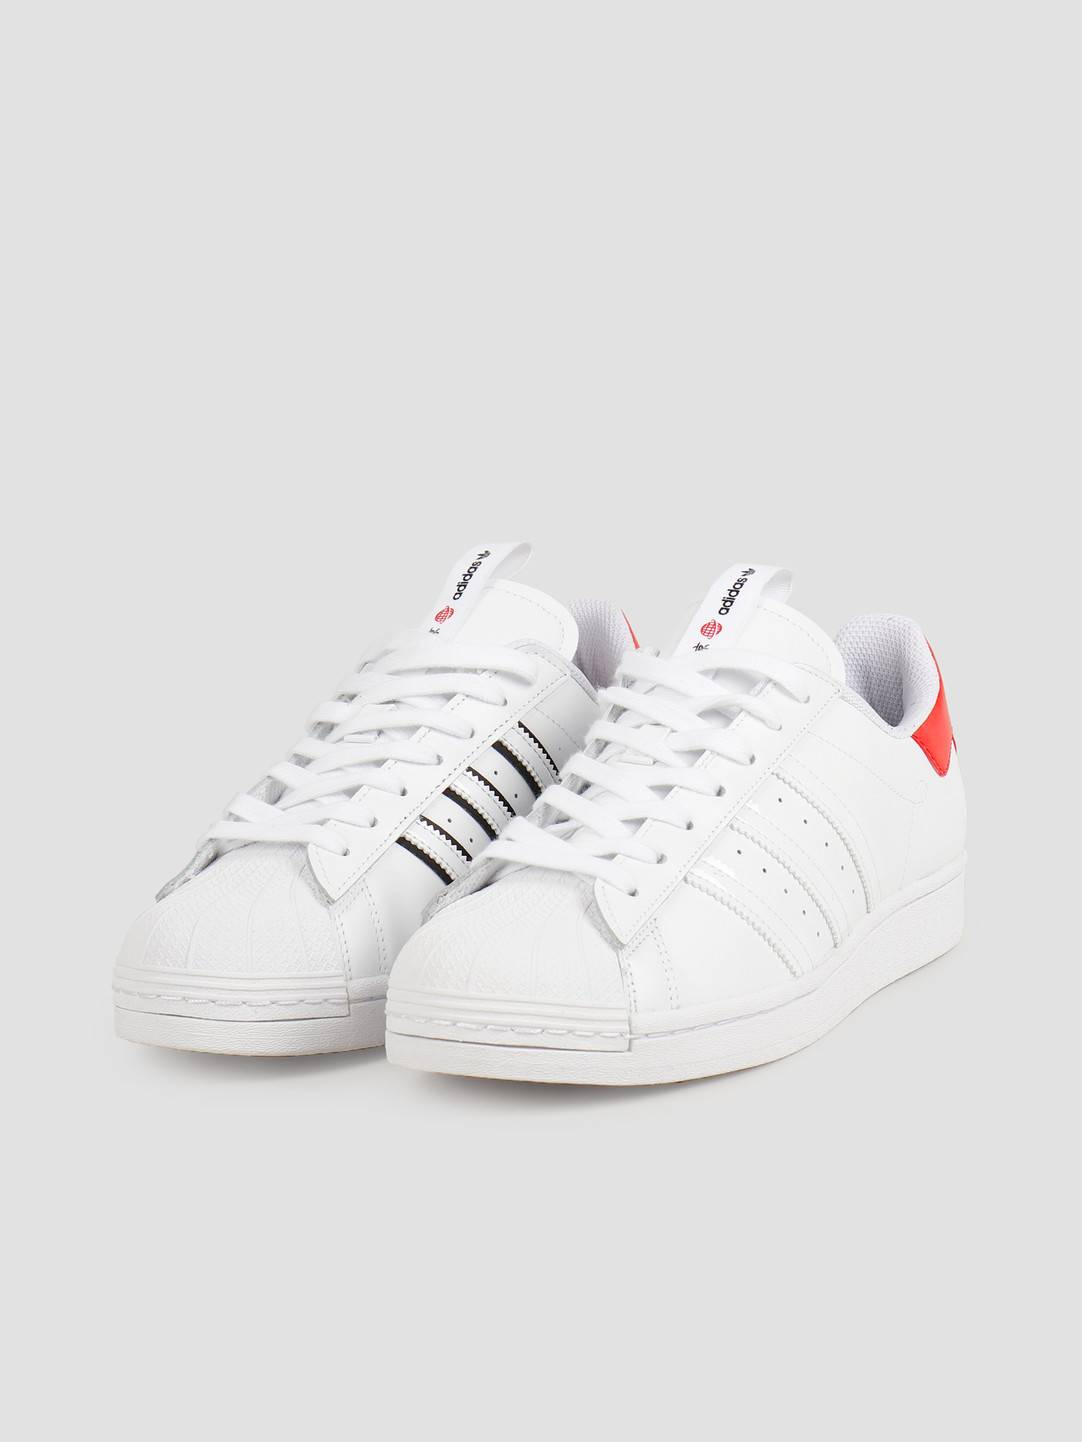 adidas adidas Superstar Footwear White Footwear White Core Black FW2829